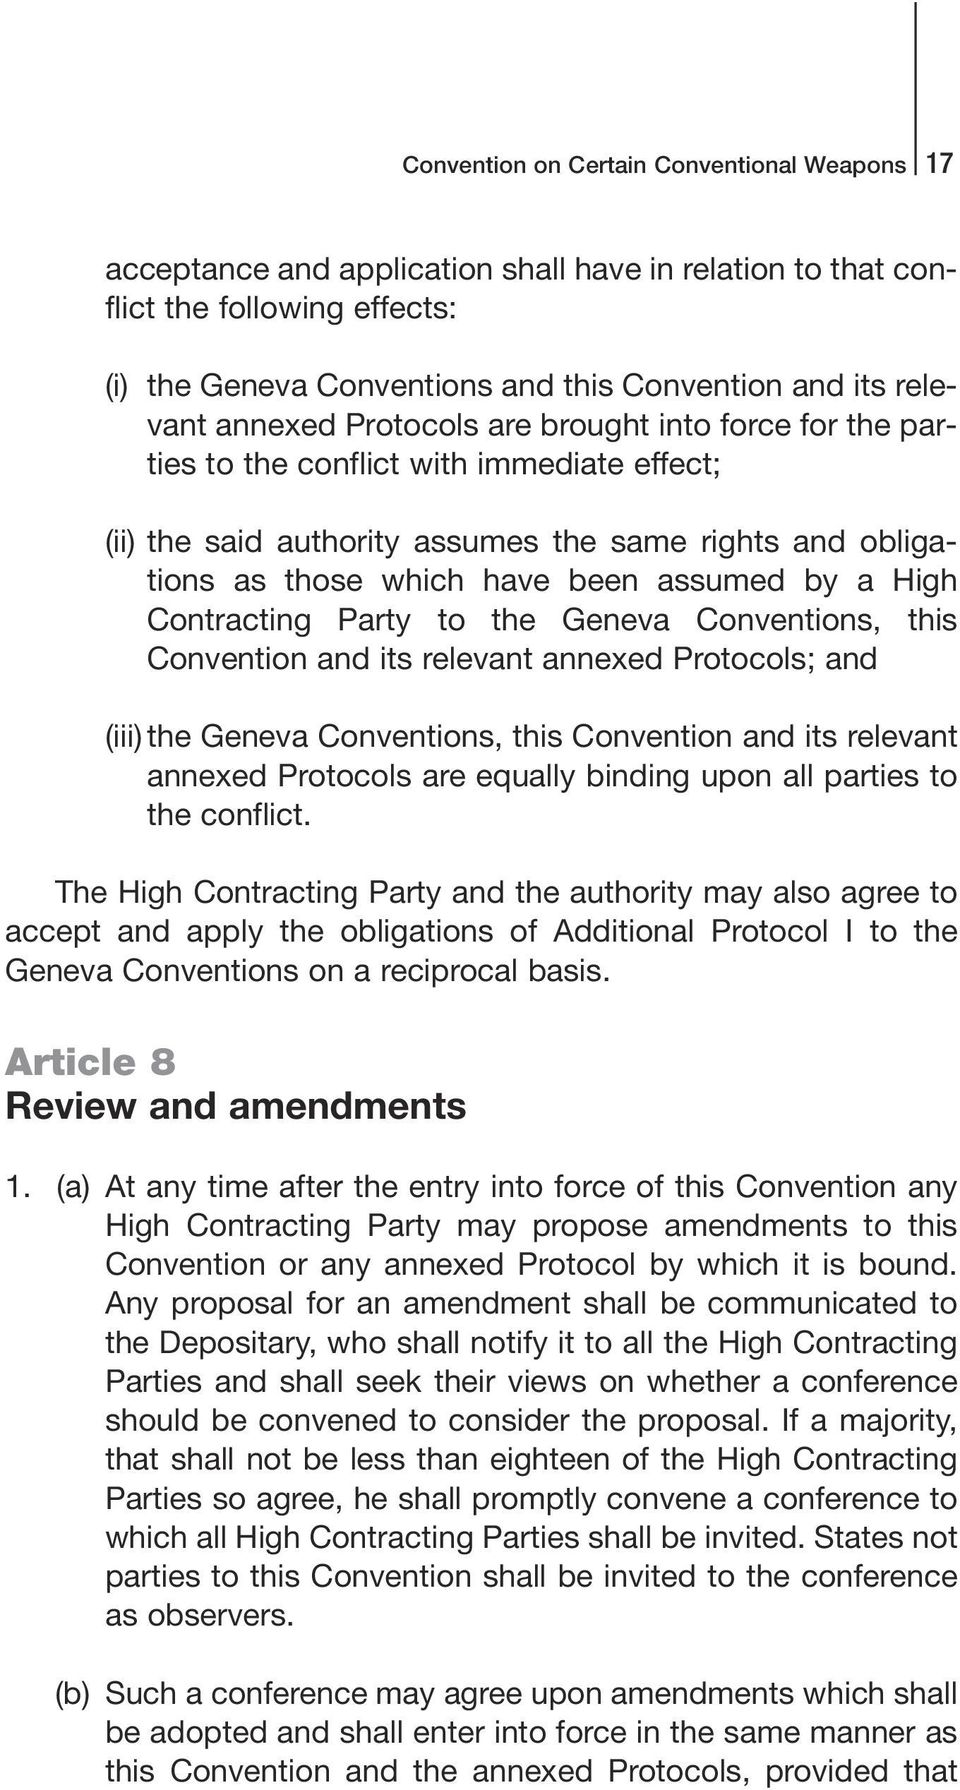 High Contracting Party to the Geneva Conventions, this Convention and its relevant annexed Protocols; and (iii) the Geneva Conventions, this Convention and its relevant annexed Protocols are equally